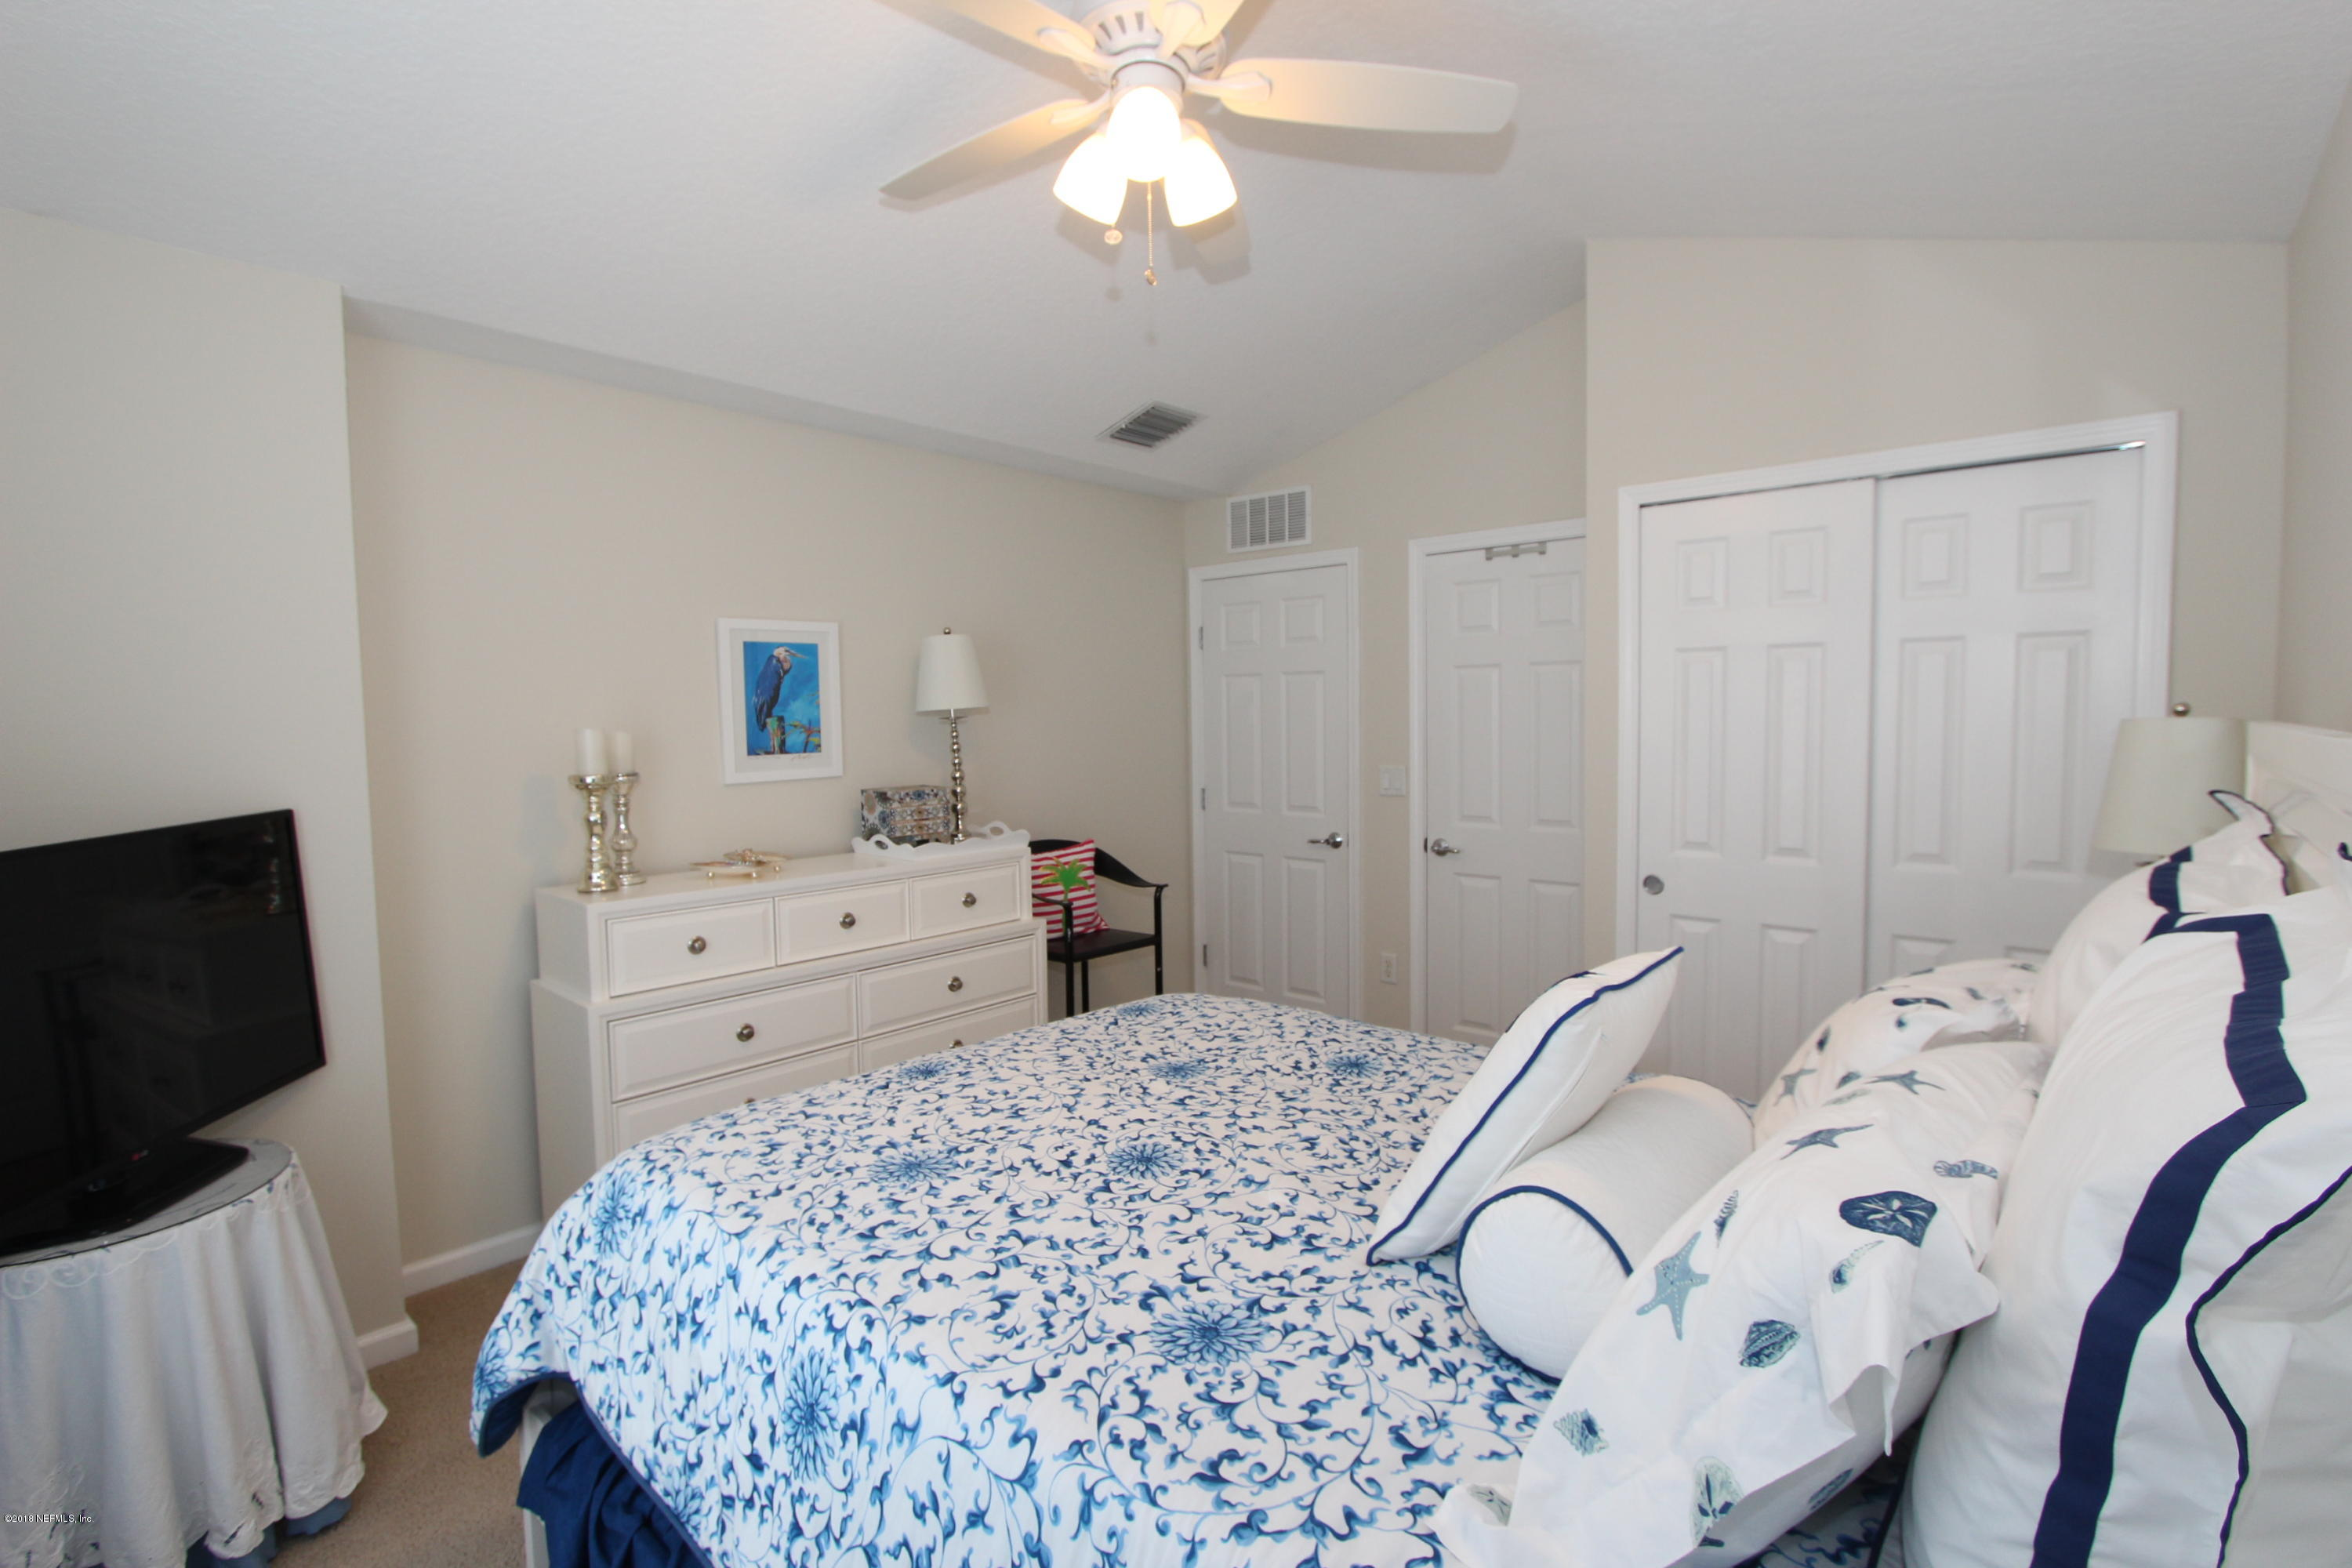 6615 SPRING FLOWER, JACKSONVILLE, FLORIDA 32258, 3 Bedrooms Bedrooms, ,2 BathroomsBathrooms,Residential - condos/townhomes,For sale,SPRING FLOWER,965454